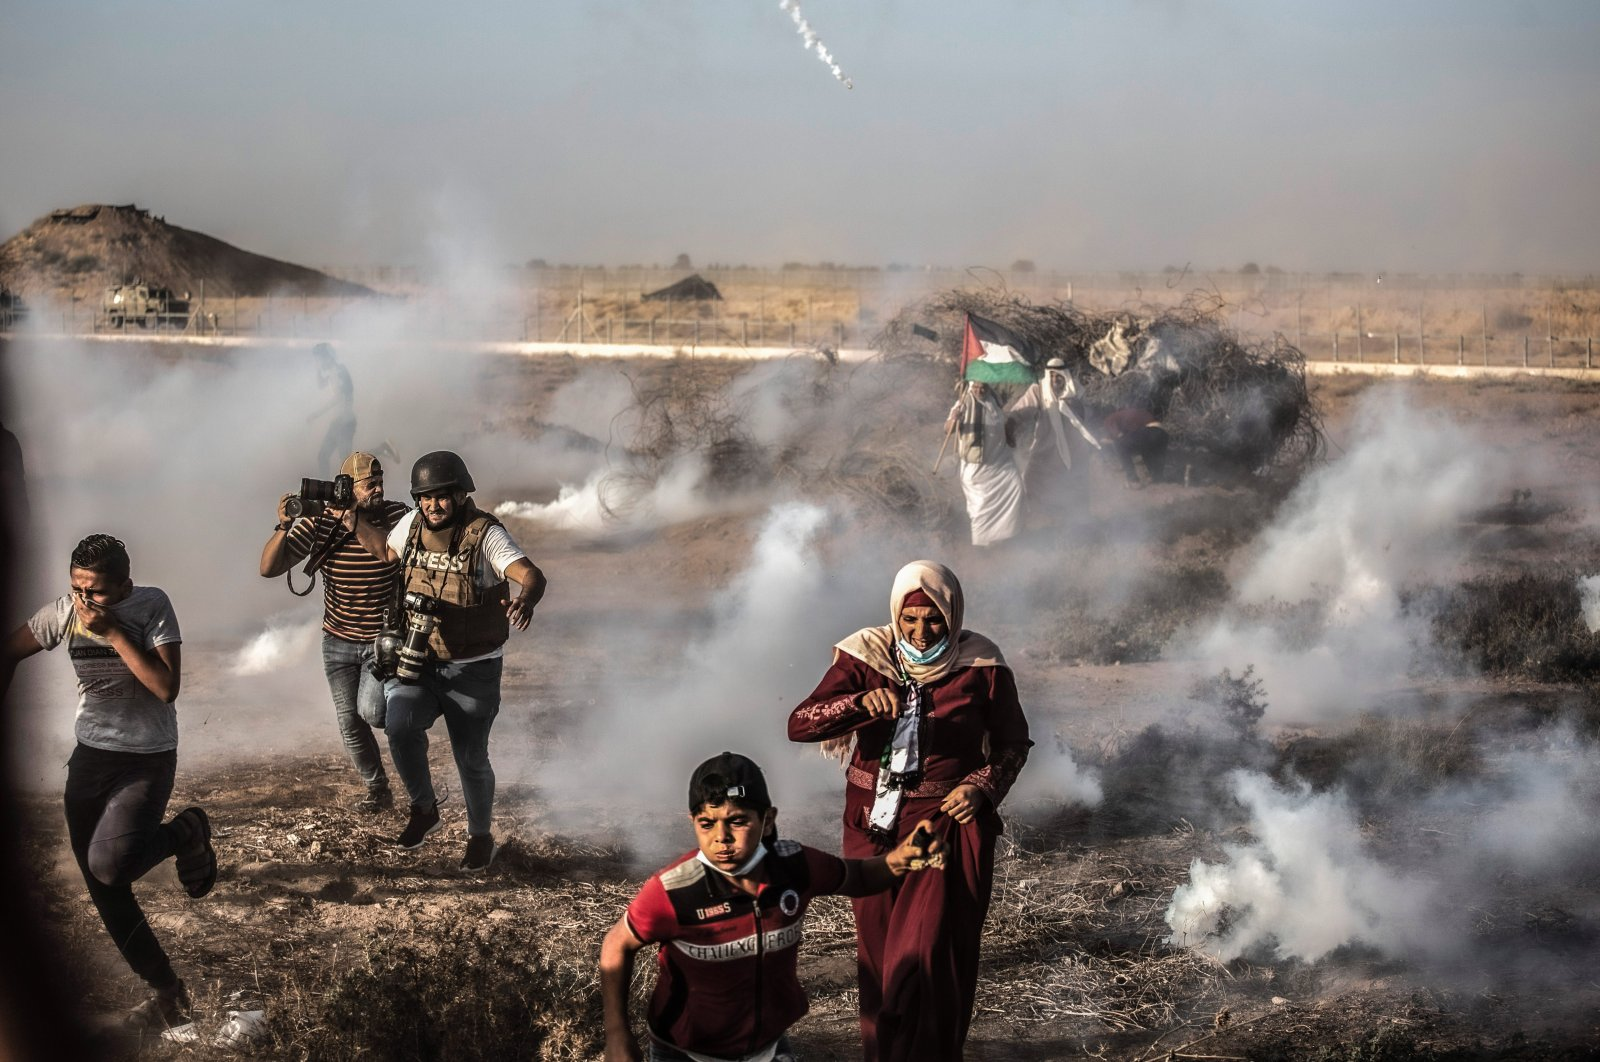 Palestinian demonstrators flee tear gas fired by Israeli forces during the demonstration near the border between Israel and the Gaza Strip, Palestine, Aug. 25, 2021. (Photo by Getty Images)